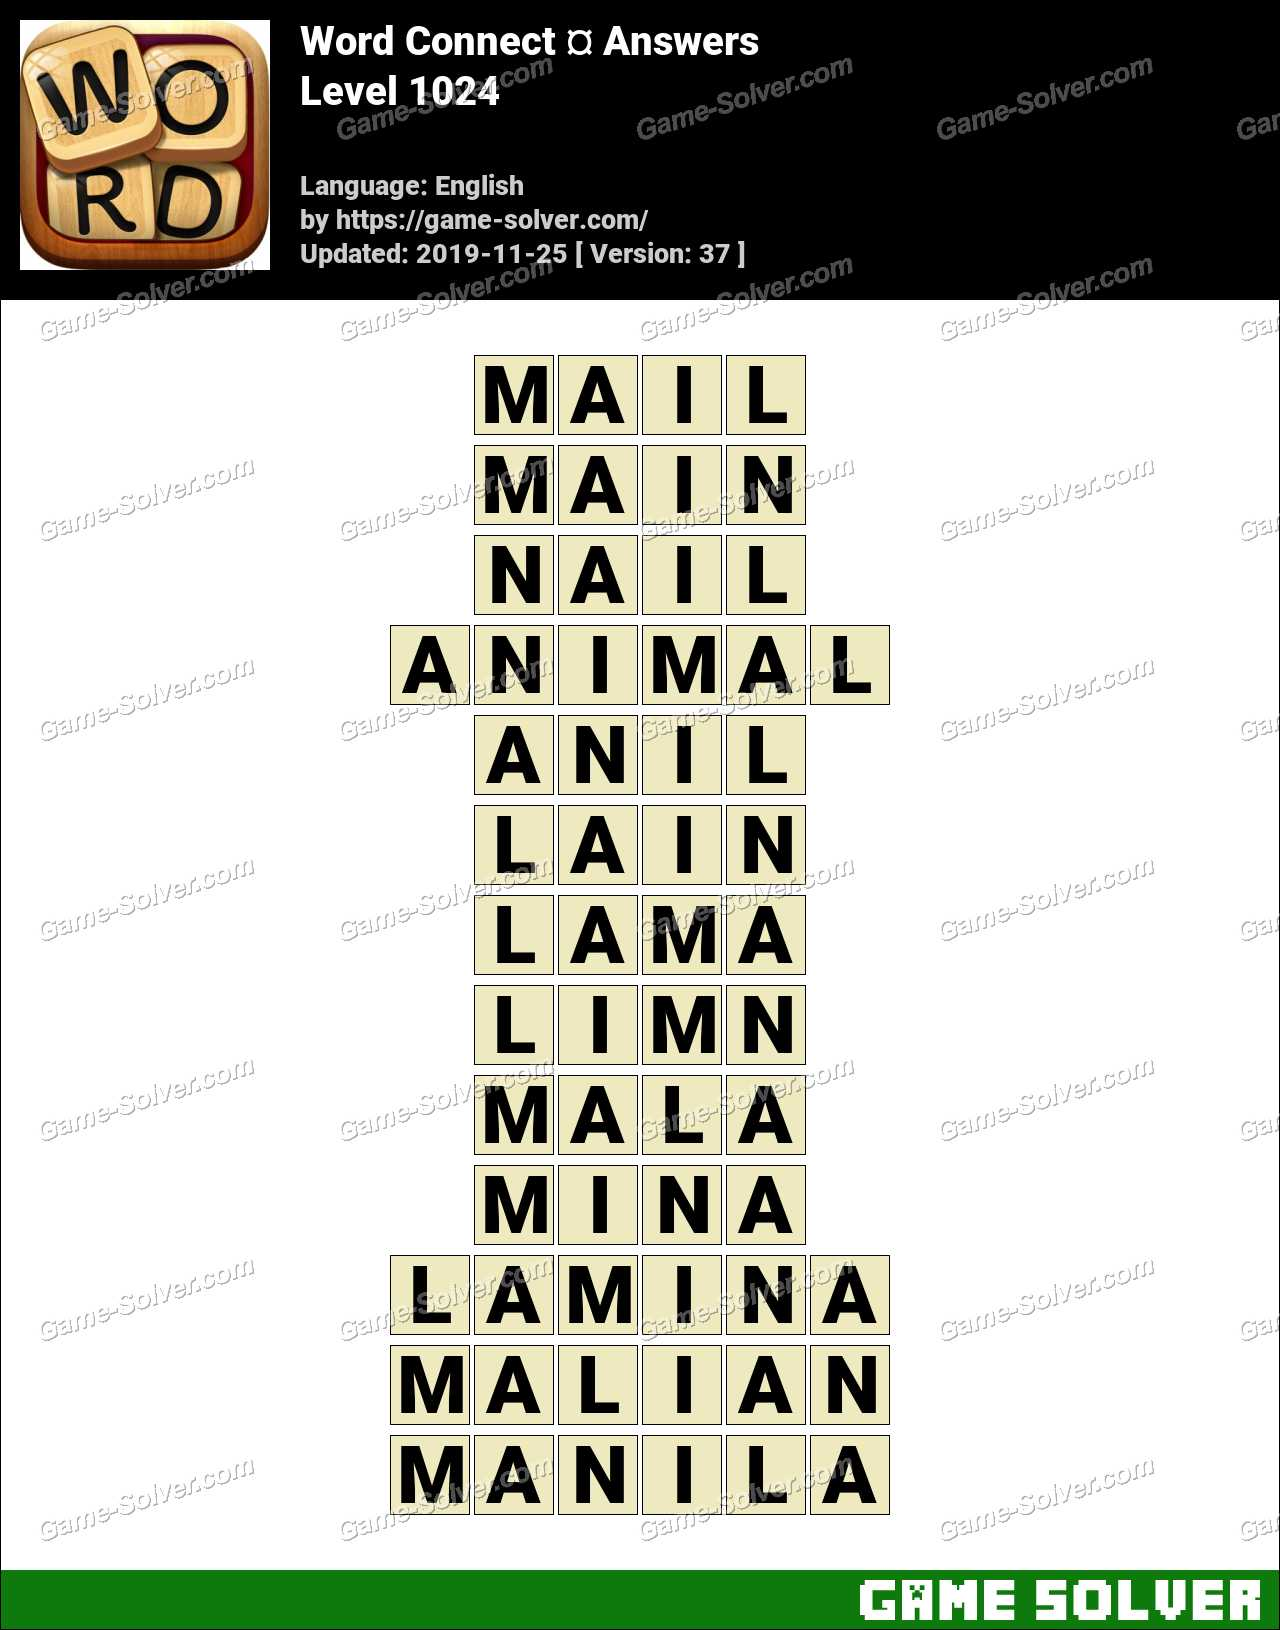 Word Connect Level 1024 Answers